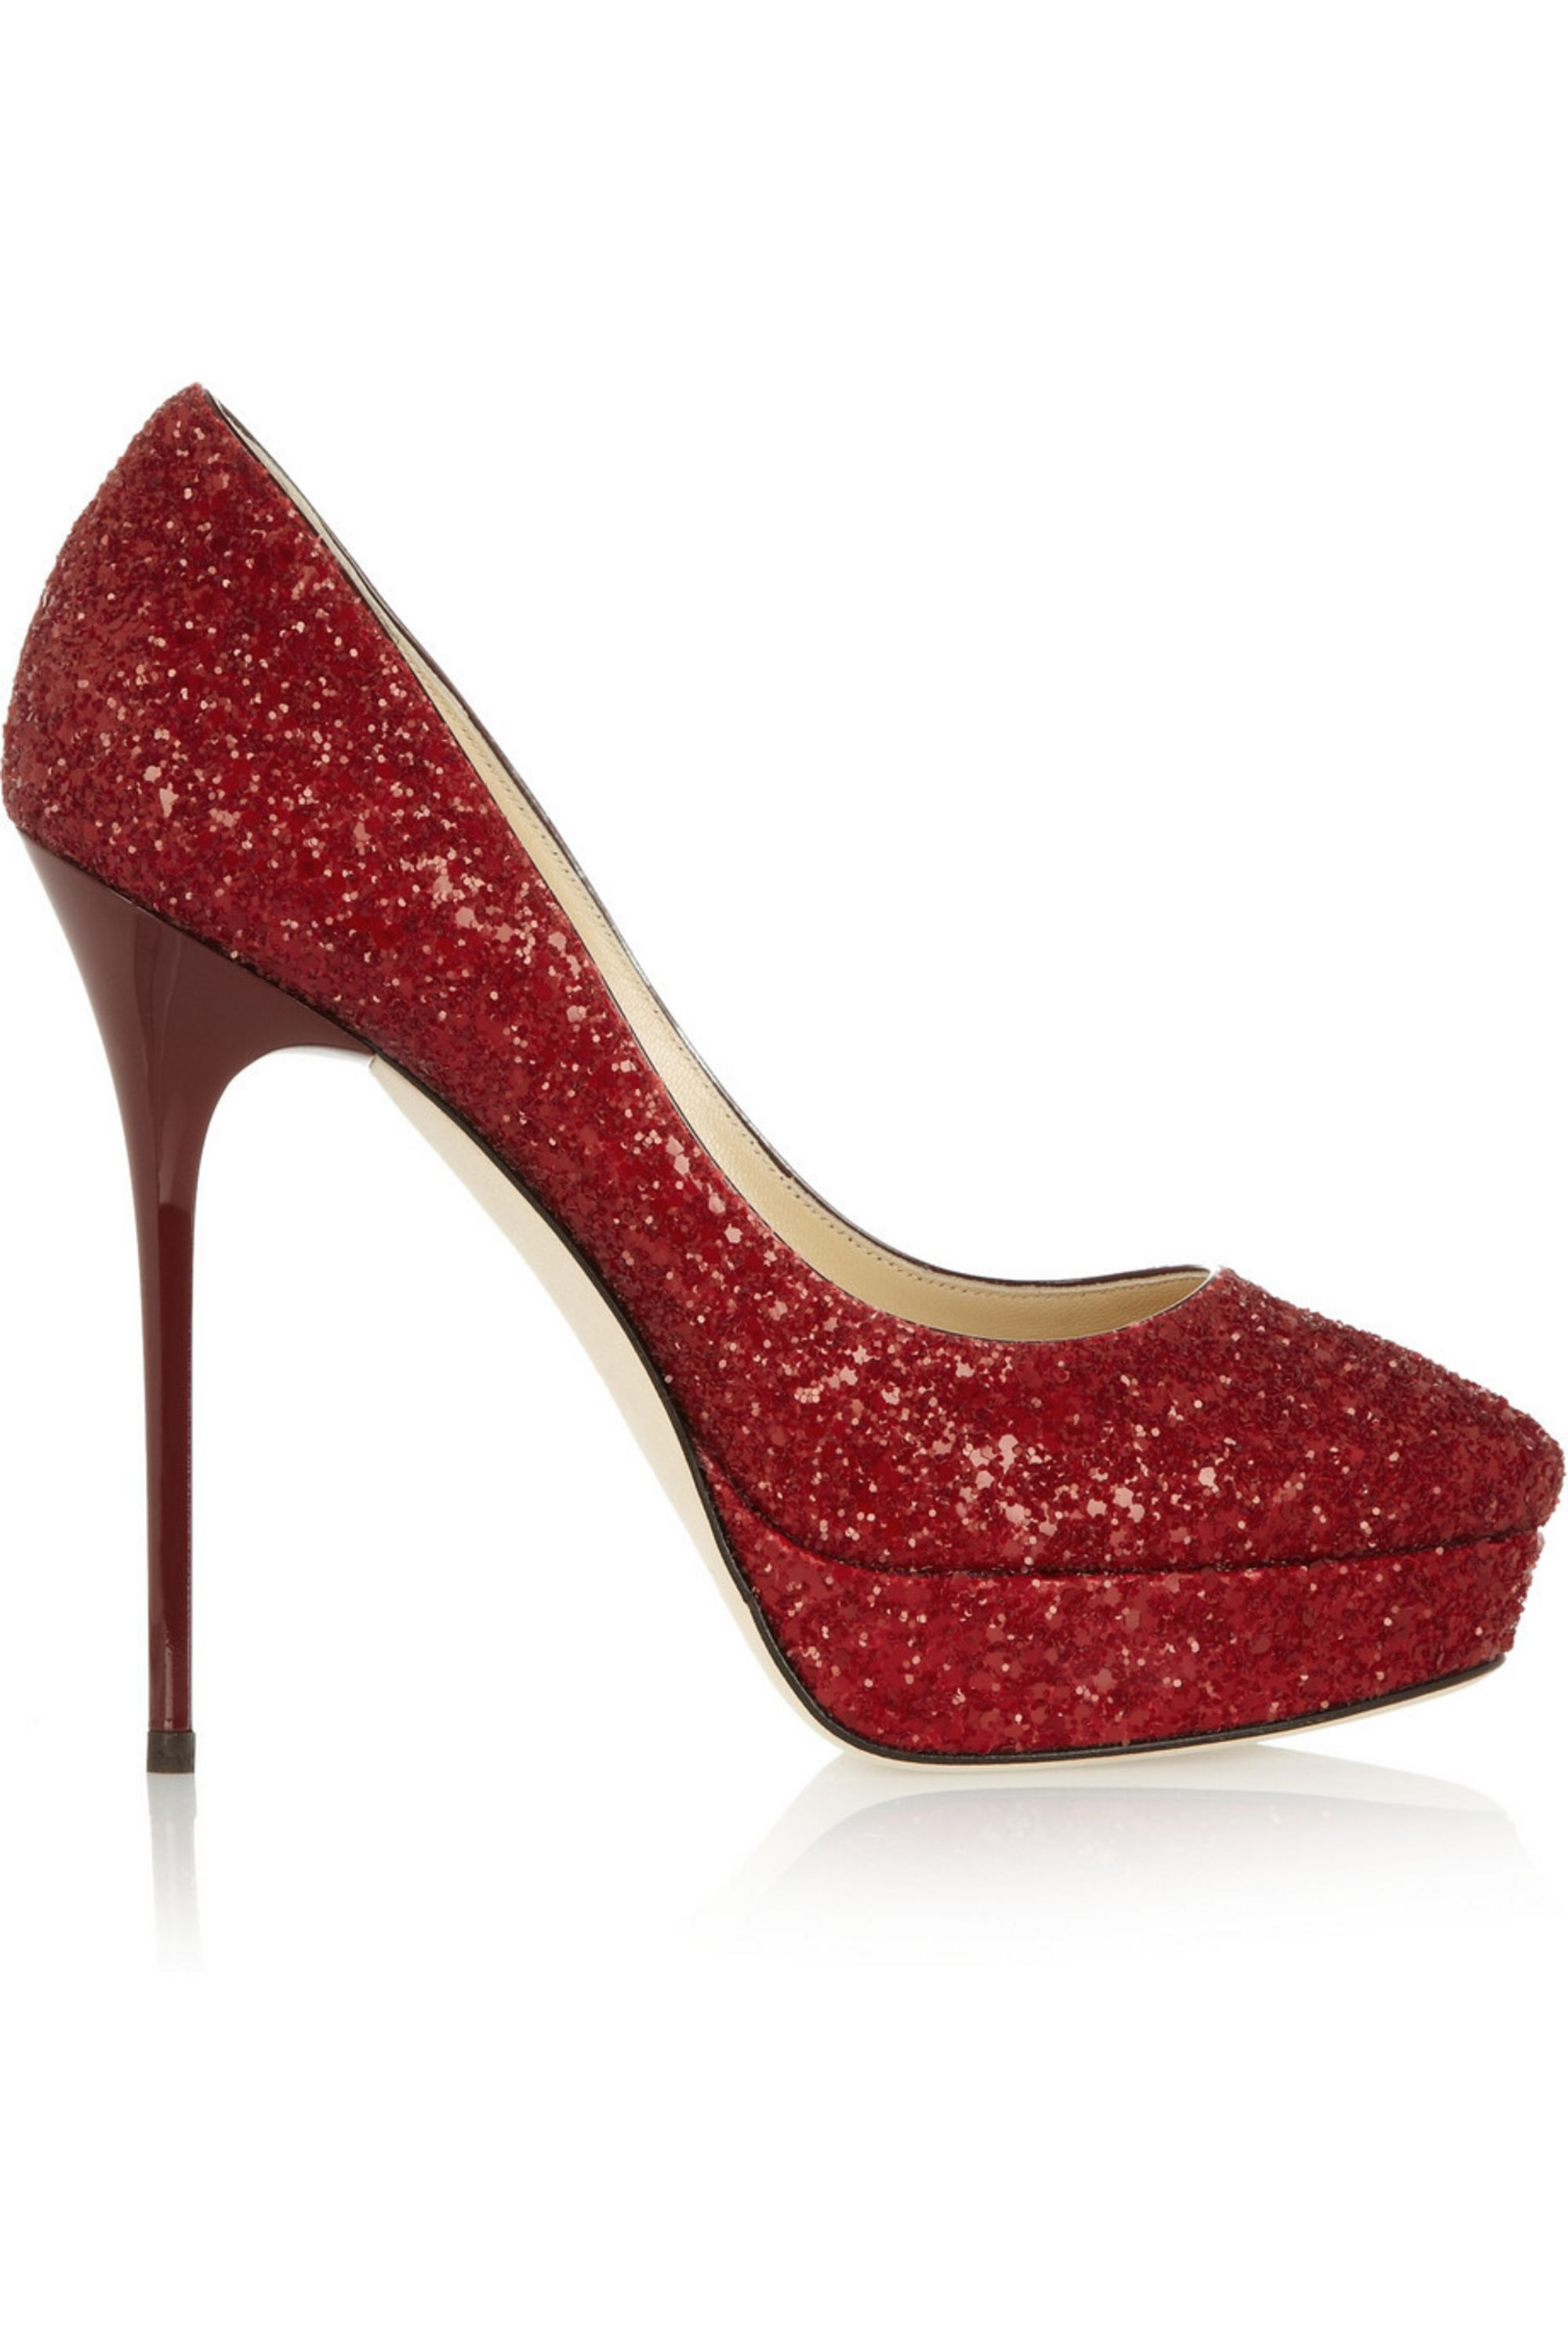 Jimmy Choo Cosmic glitter-finished leather pumps